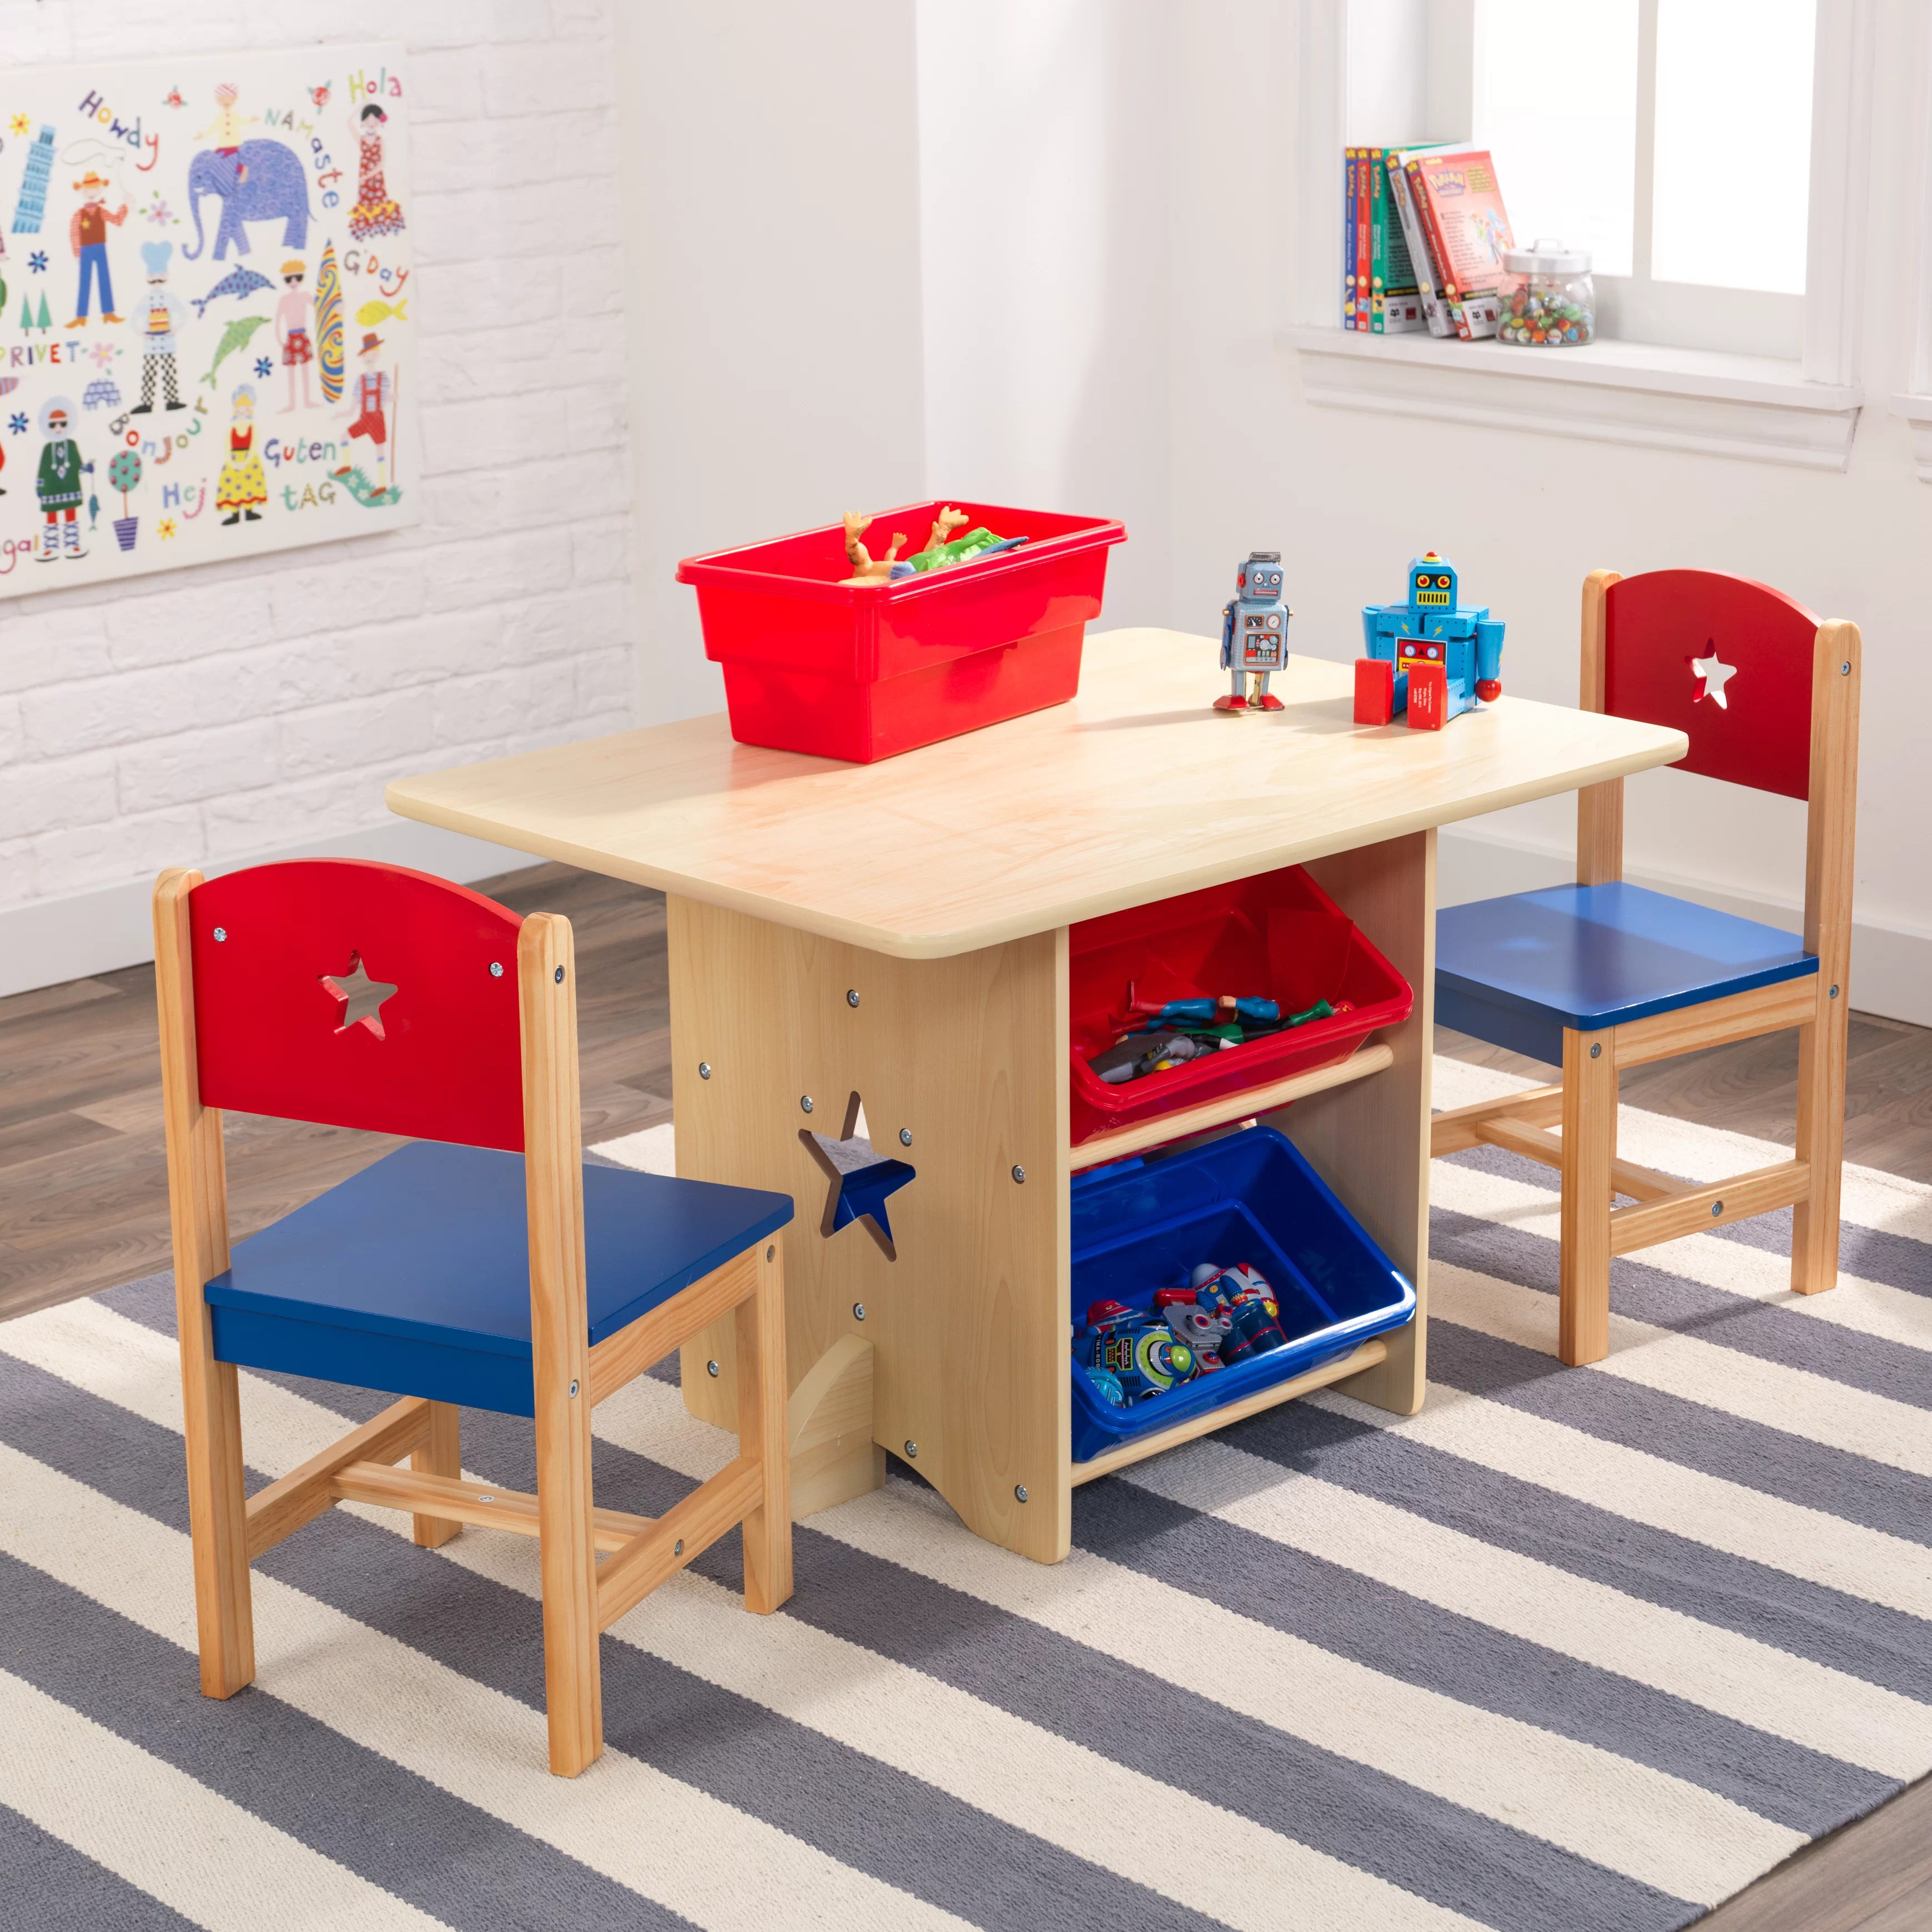 Lincraft Curtain Rods Star Kids 5 Piece Arts And Crafts Table And Chair Set